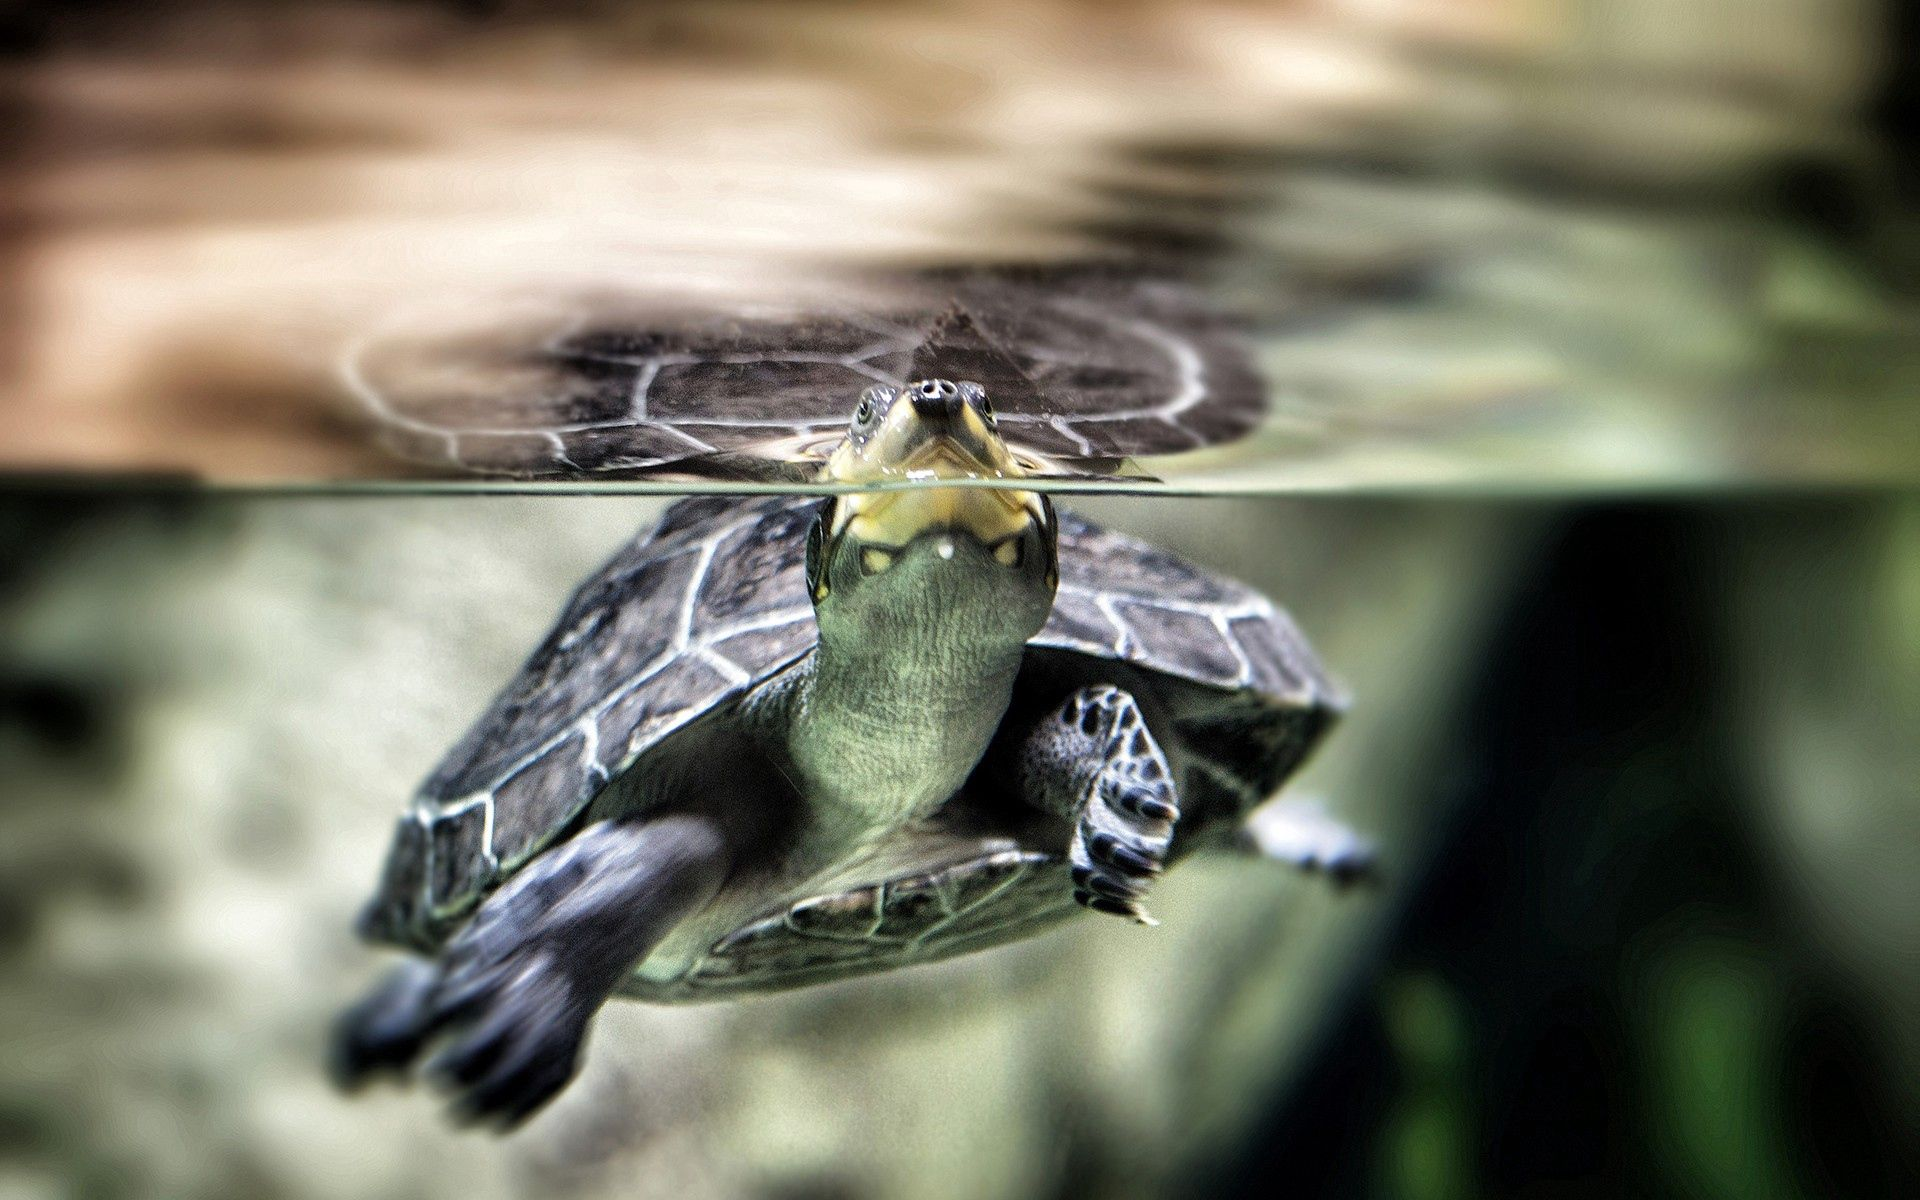 88534 download wallpaper Animals, Water, To Swim, Swim, Carapace, Shell, Turtle screensavers and pictures for free